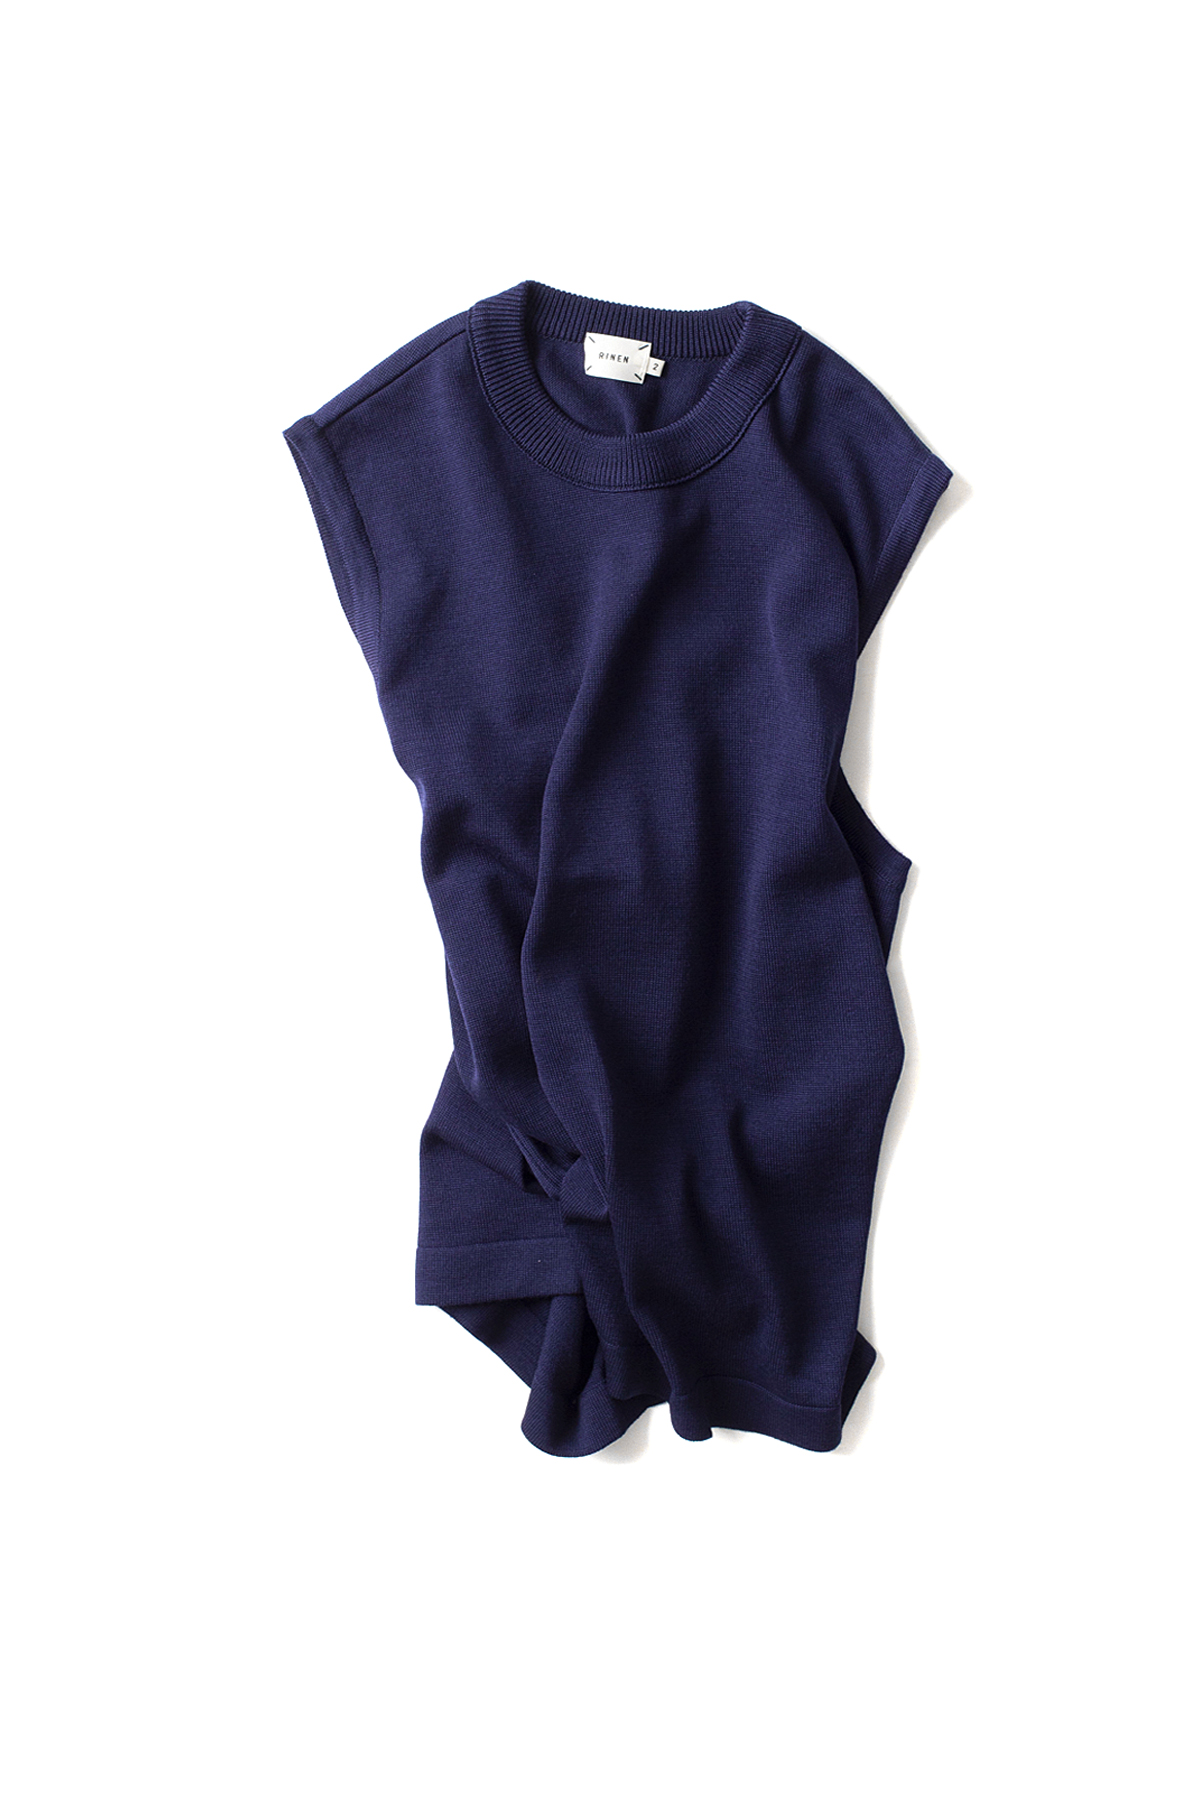 RINEN : Wool Knit Vest 13980 (Navy)